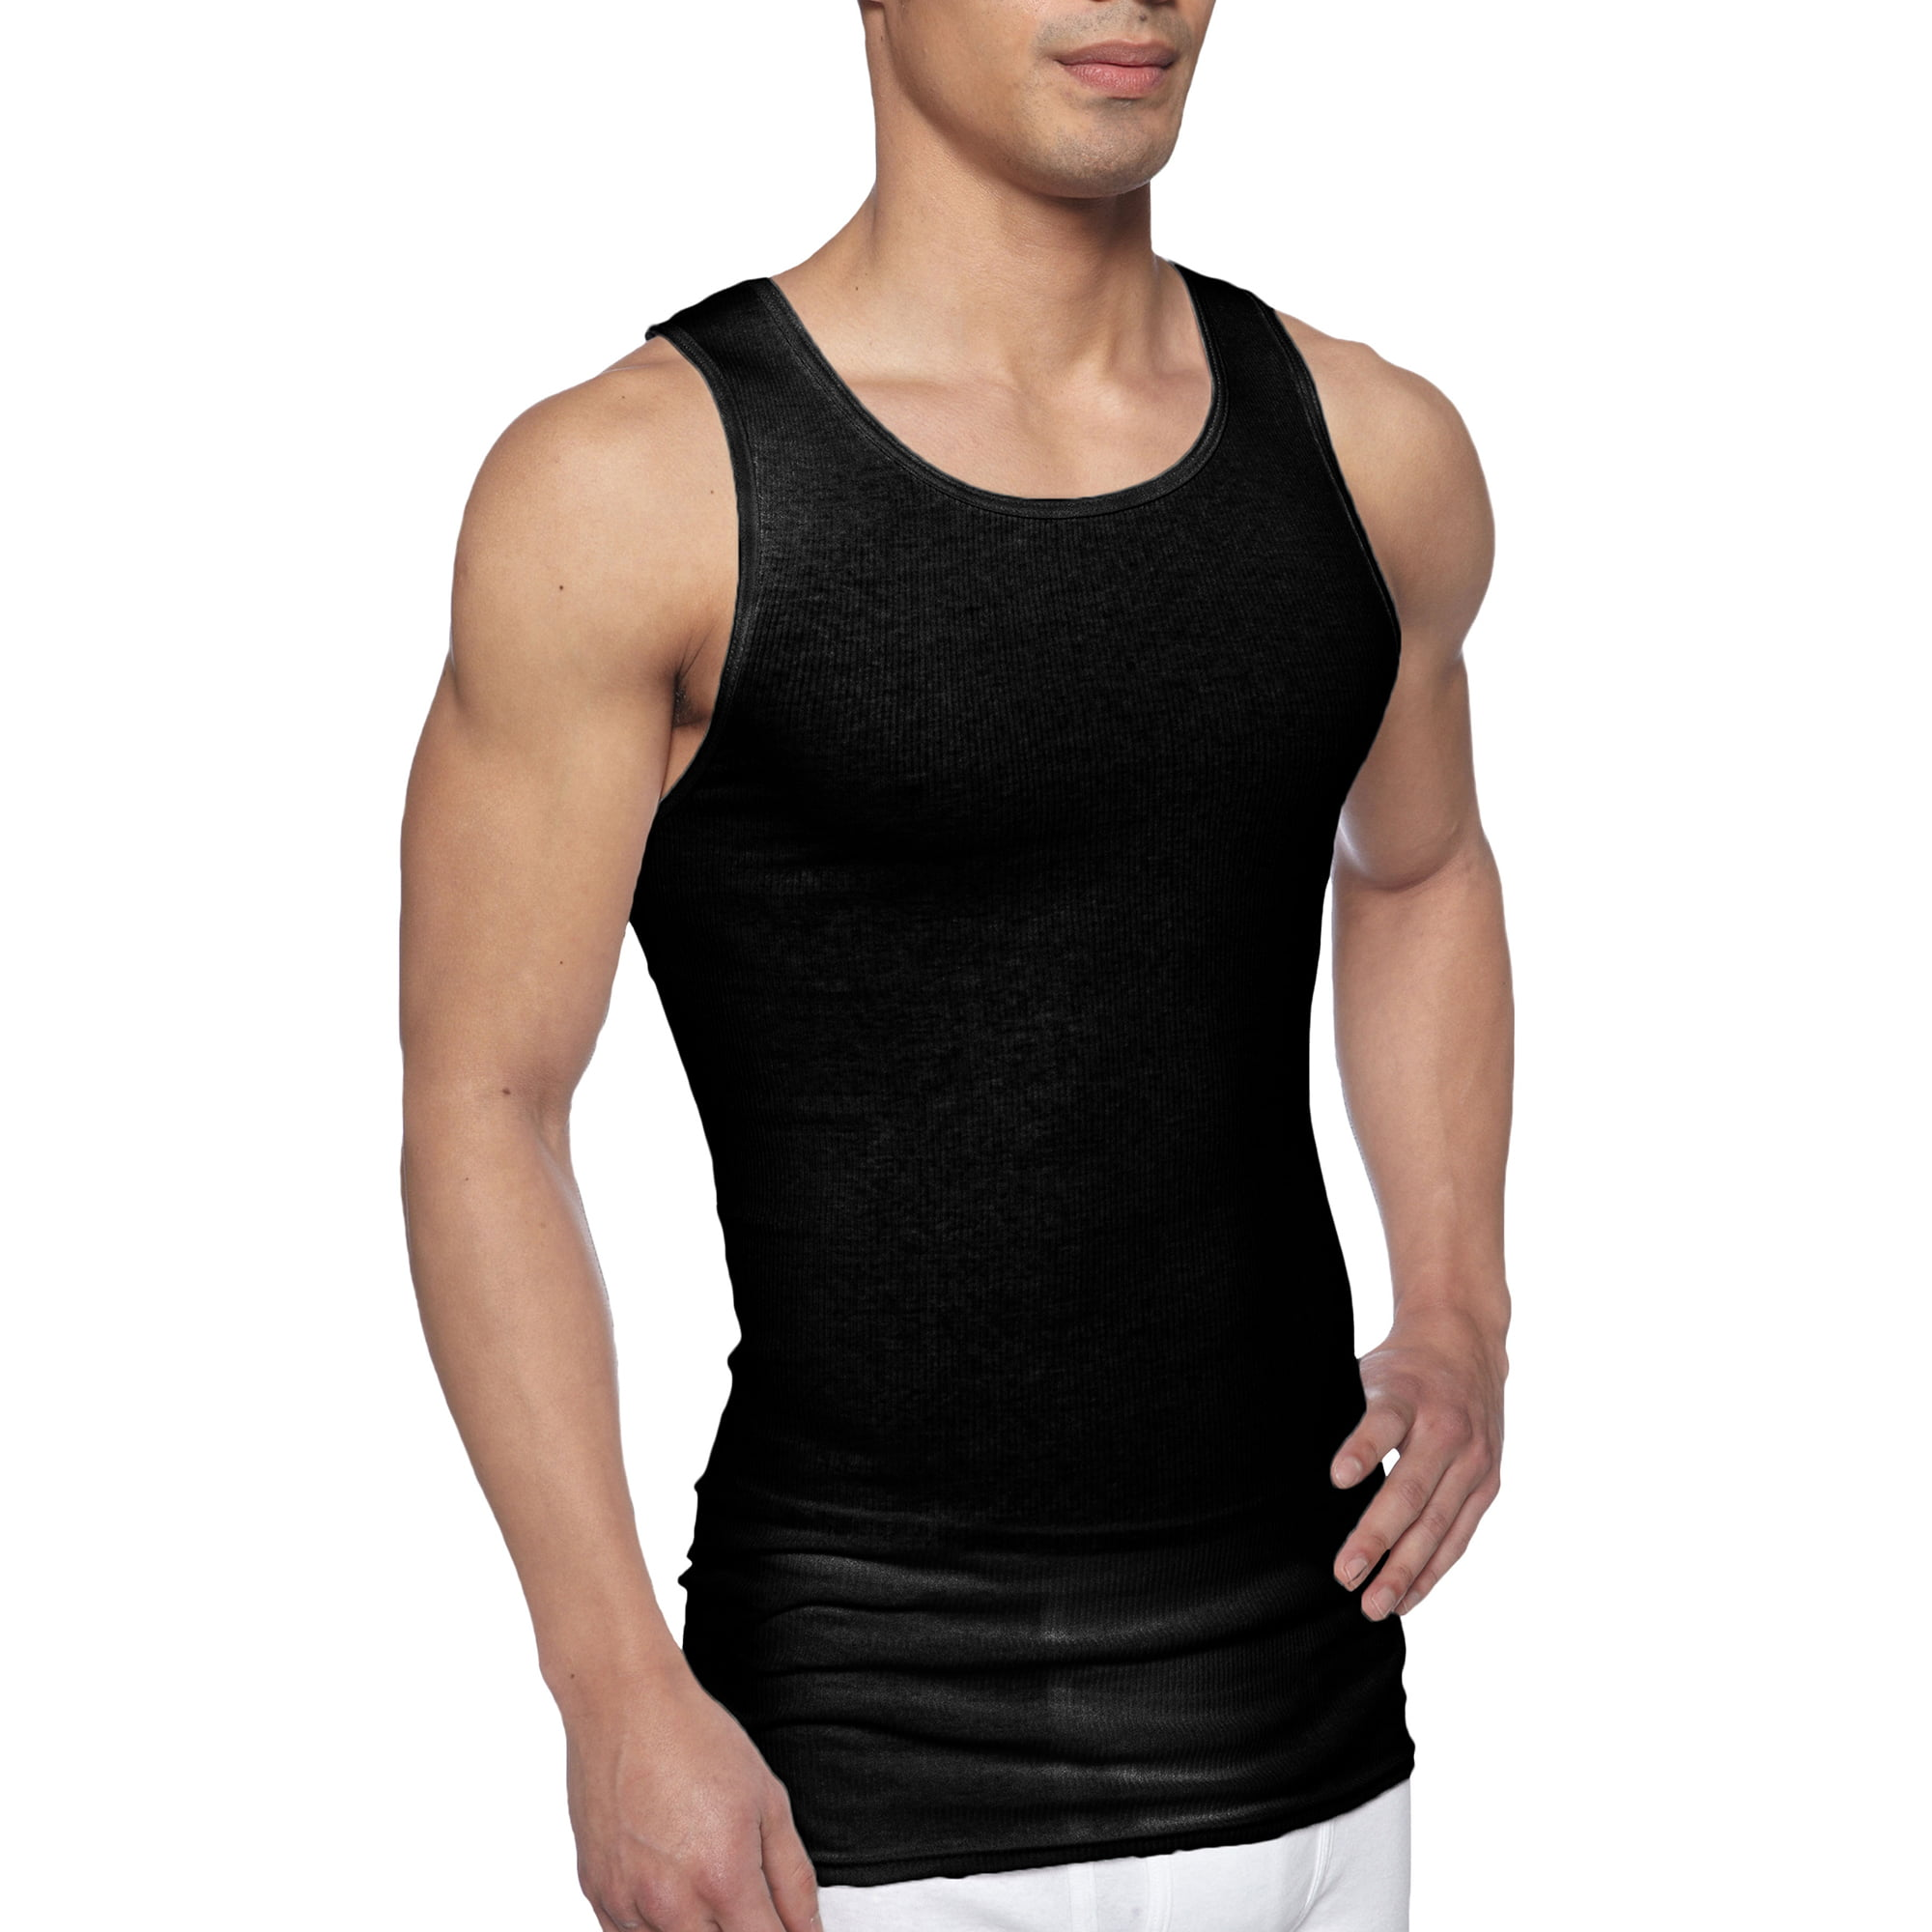 Hering Men/'s ribbed 100/% cotton Muscle workout gym fitness undershirt tank top